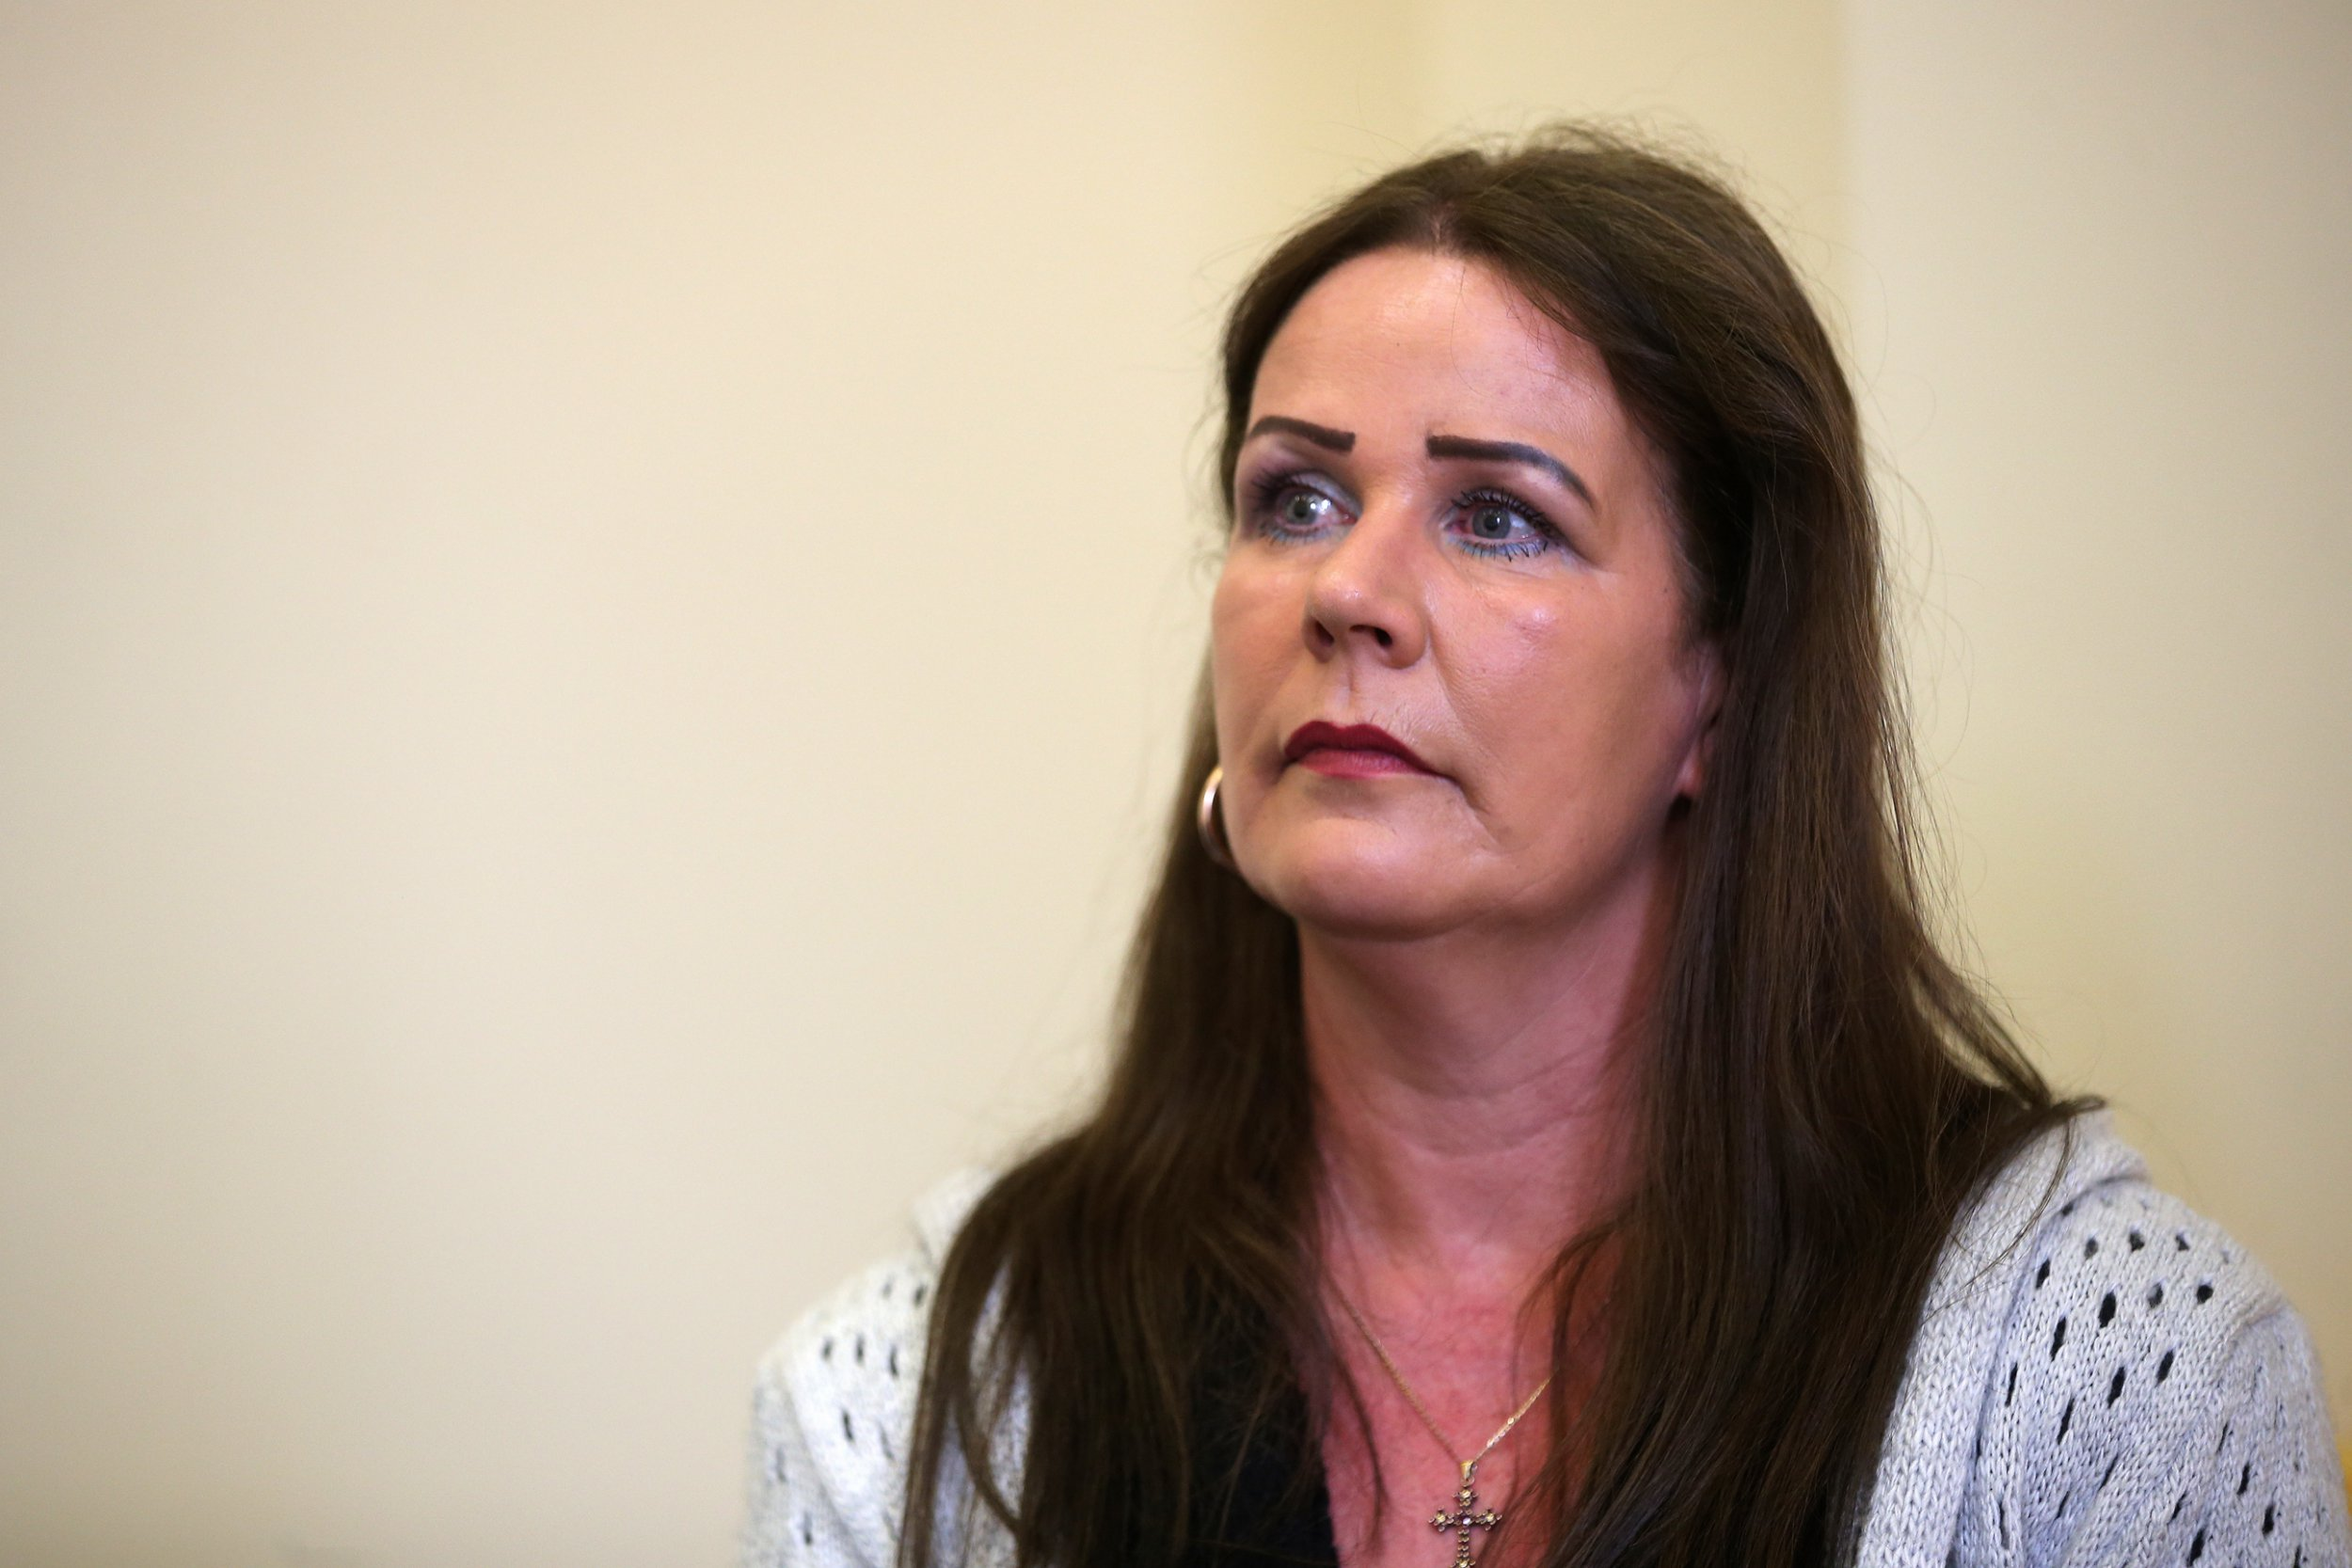 Mum will never see her rapist brought to justice after CPS wrongly dropped her case